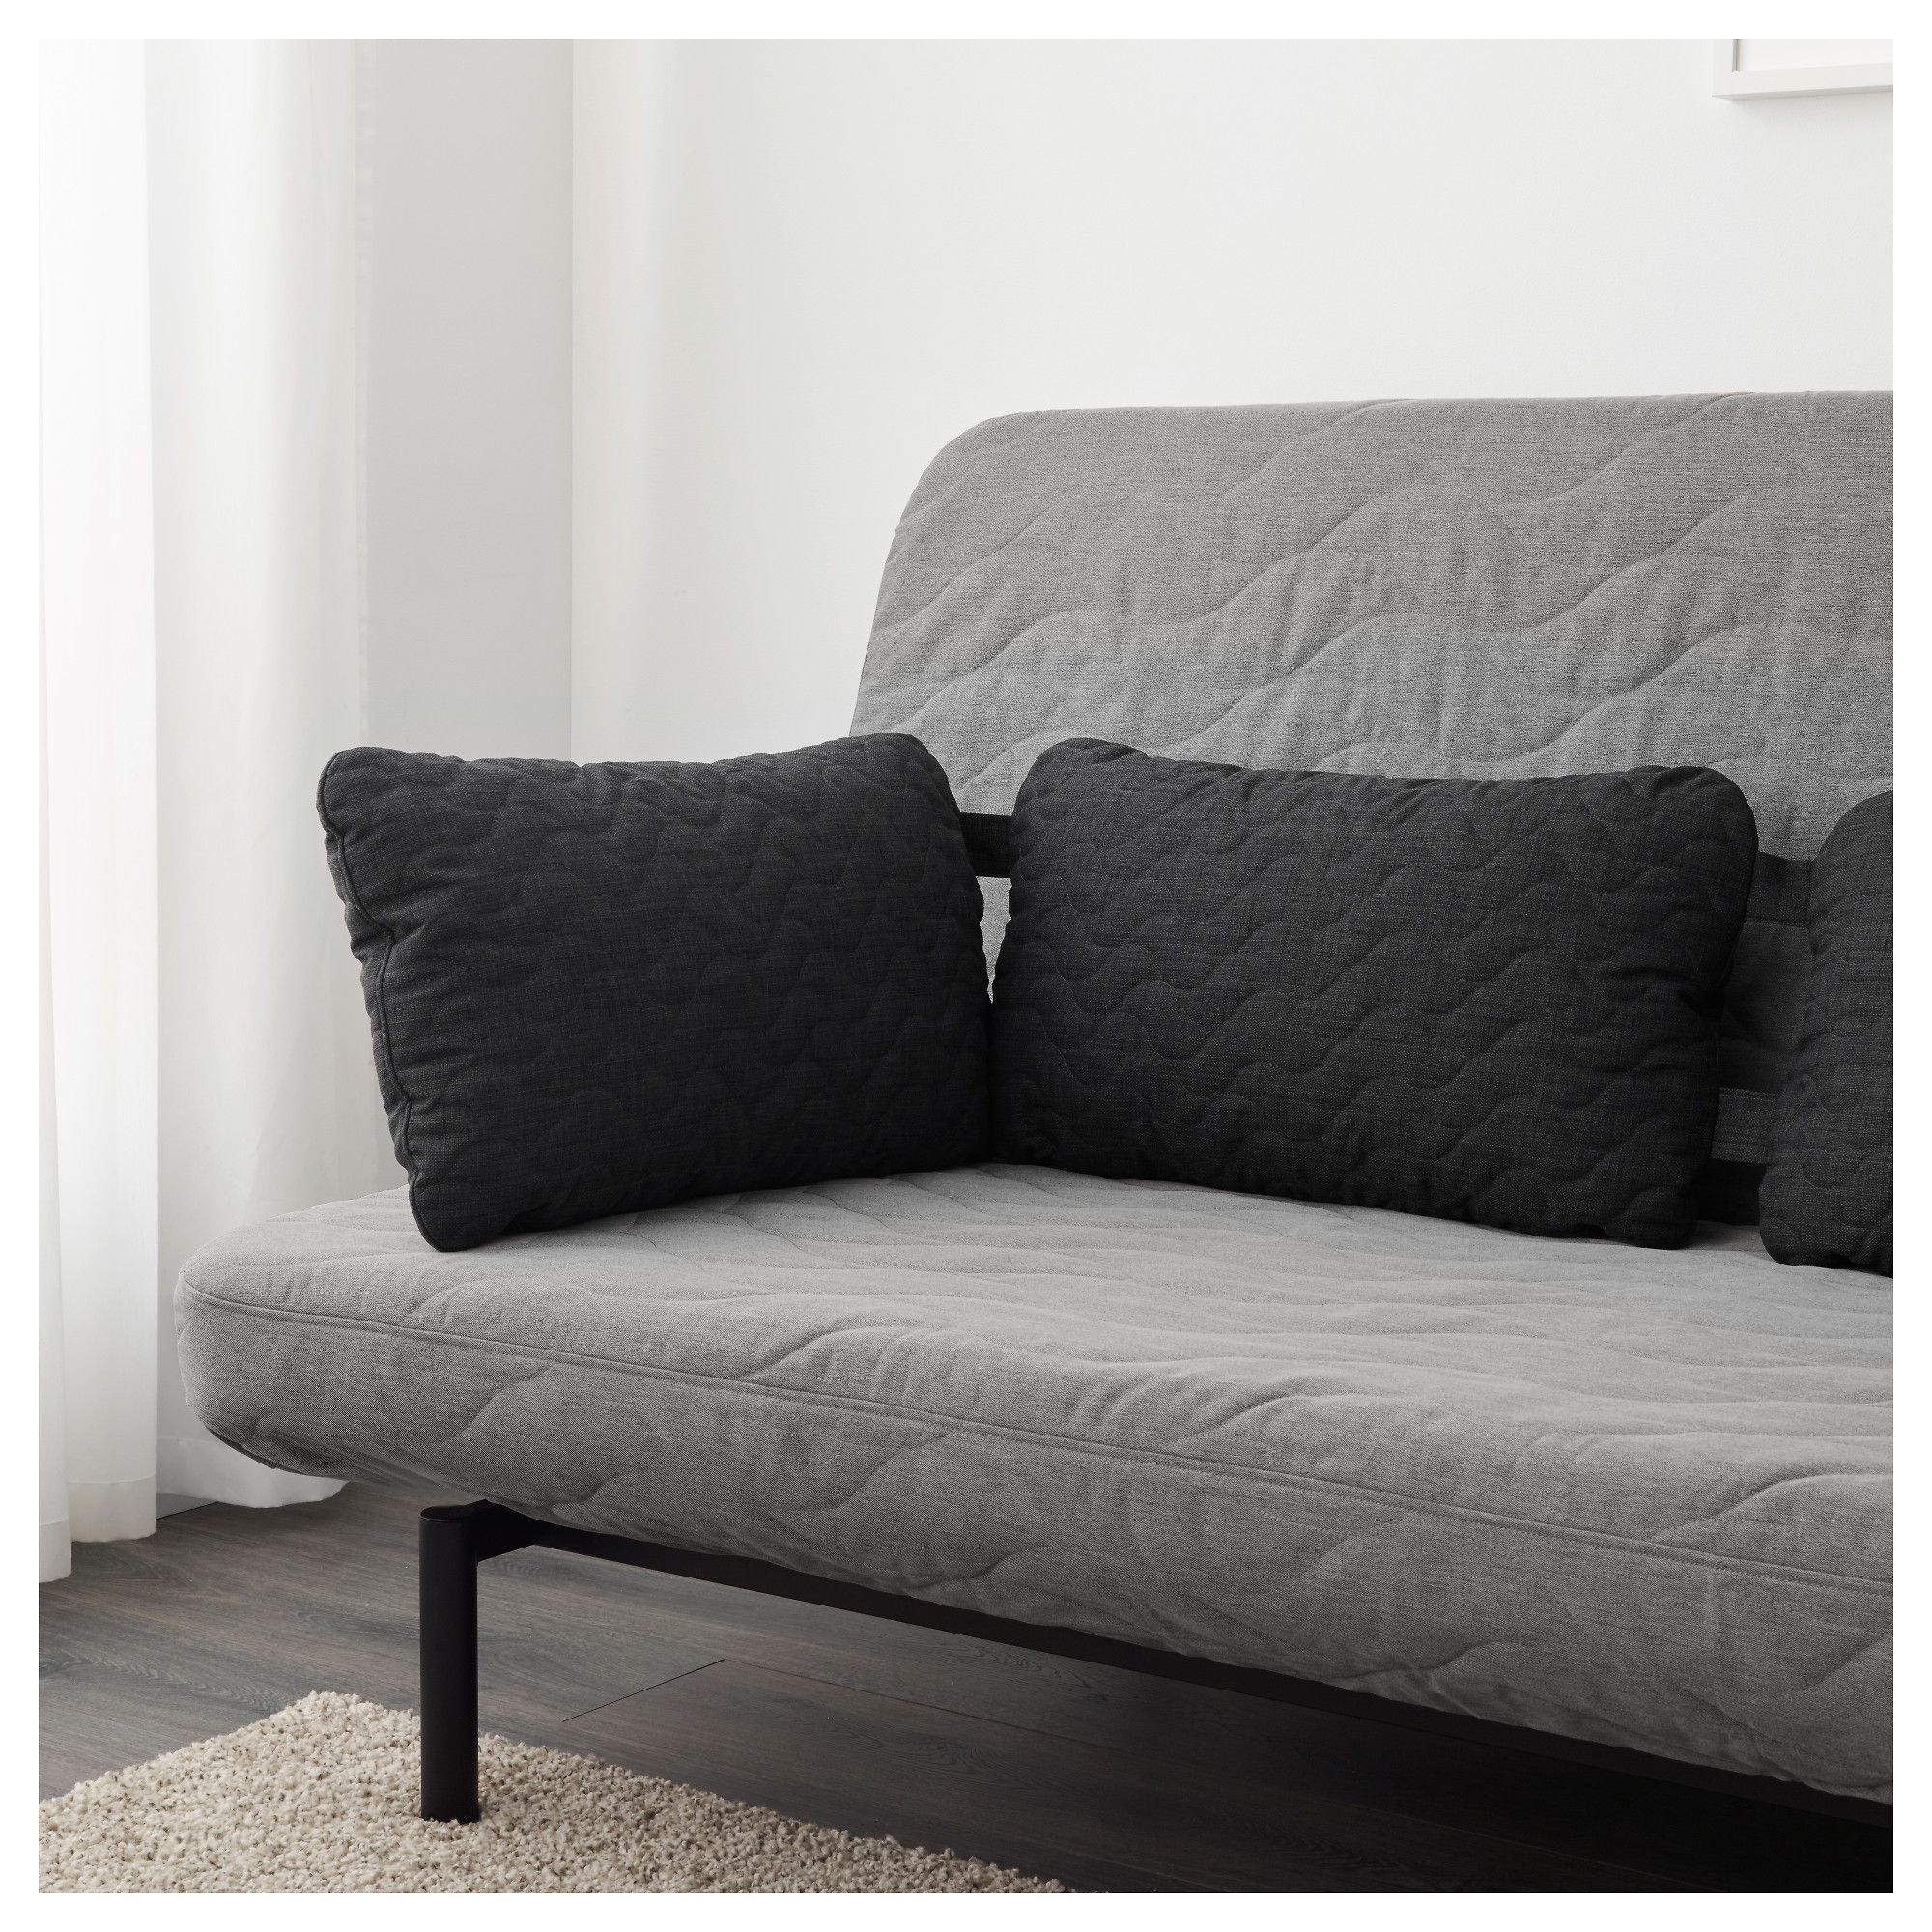 Furniture and Home Furnishings Cushions ikea, Ikea, Cushions